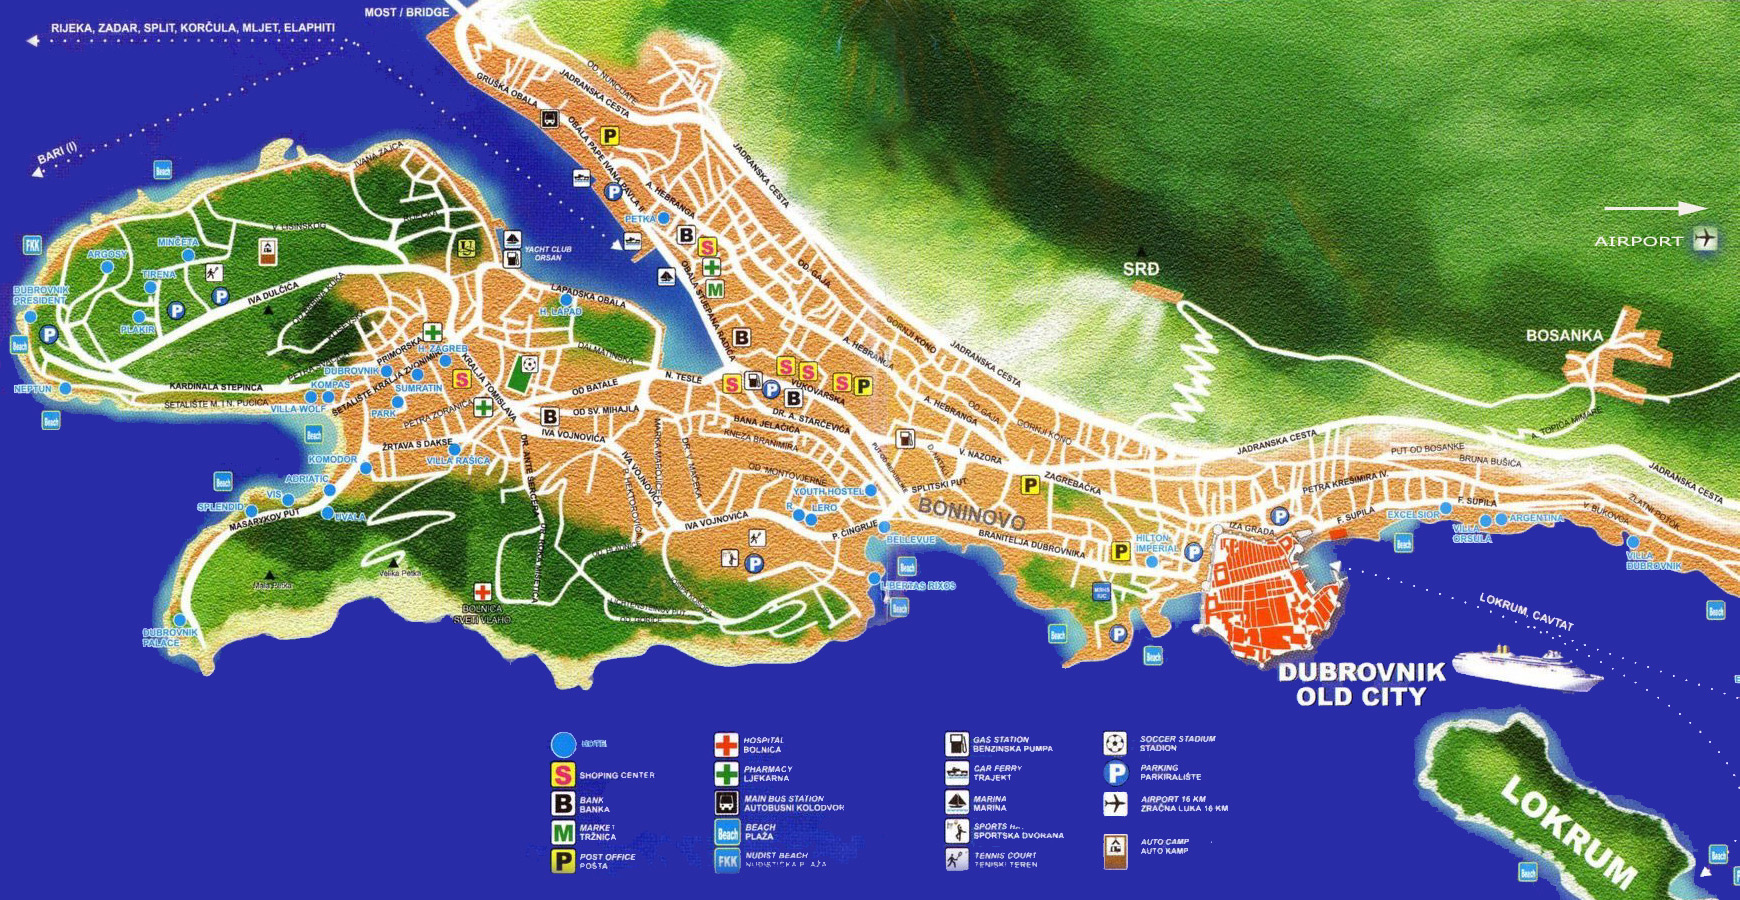 Interactive map of the town of dubrovnik in croatia to click on the active zones to reach the places gumiabroncs Gallery